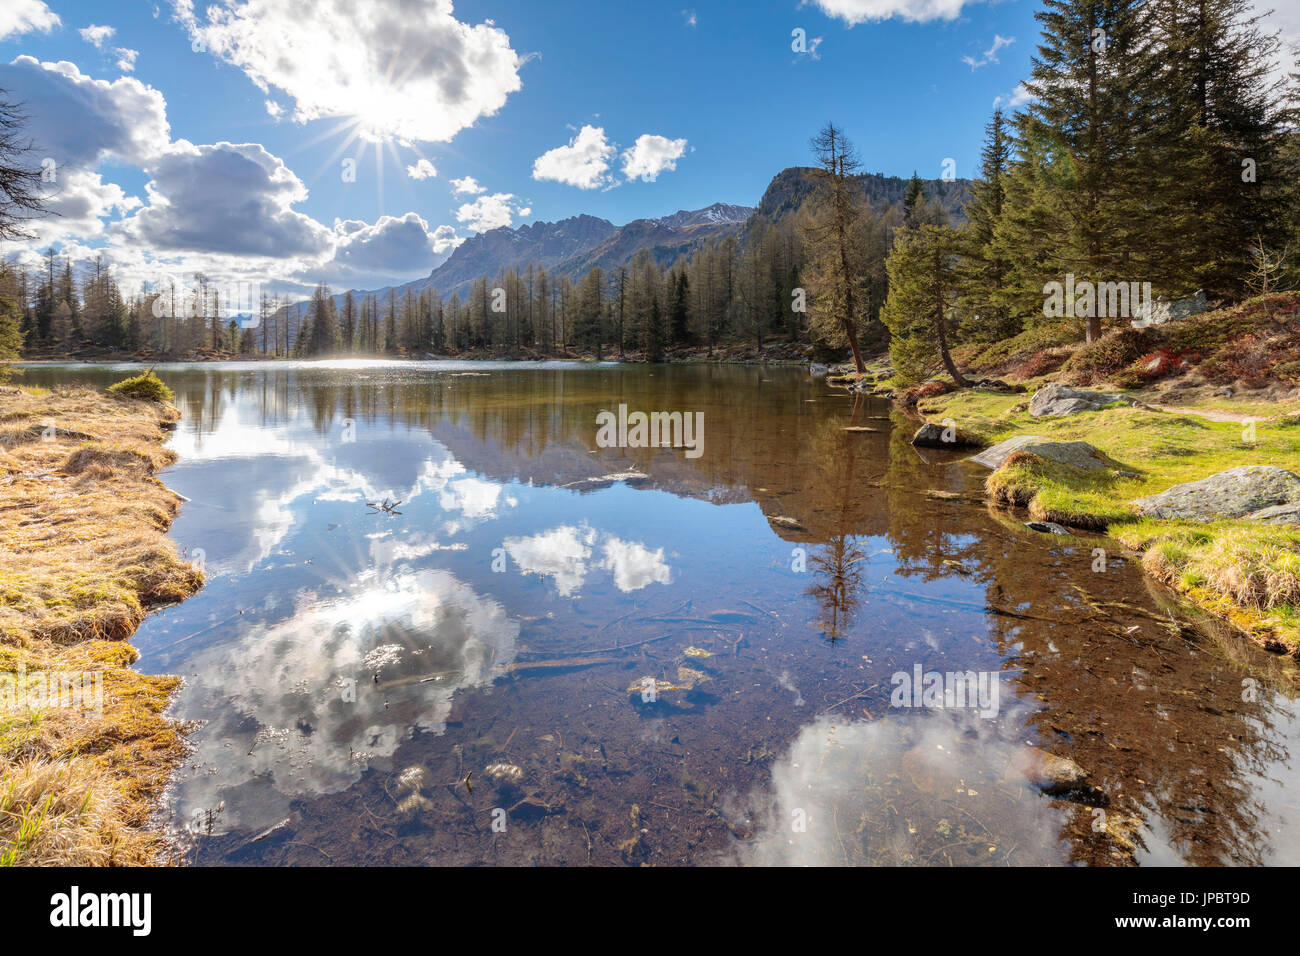 Europe, Italy, Trentino Alto Adige, Moena, Dolomites, the  alpine lake of San Pellegrino surrounded by a forest Stock Photo